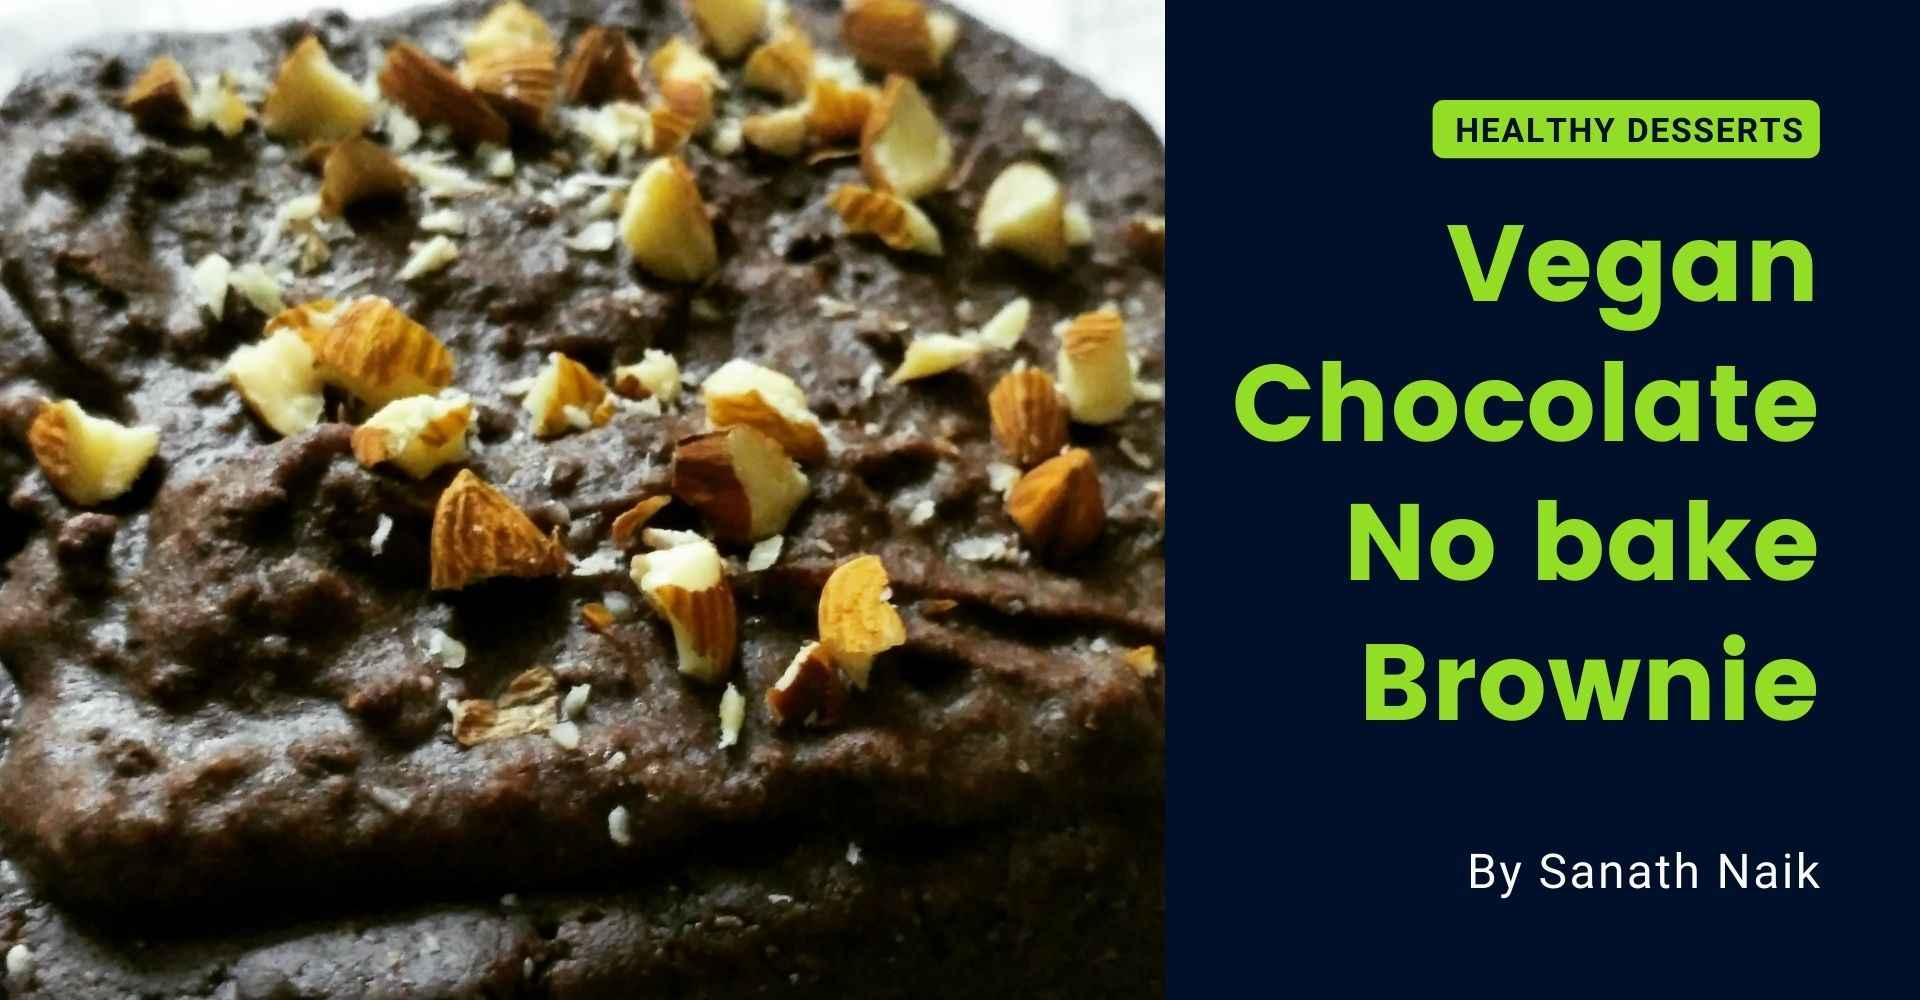 vegan chocolate no bake brownie